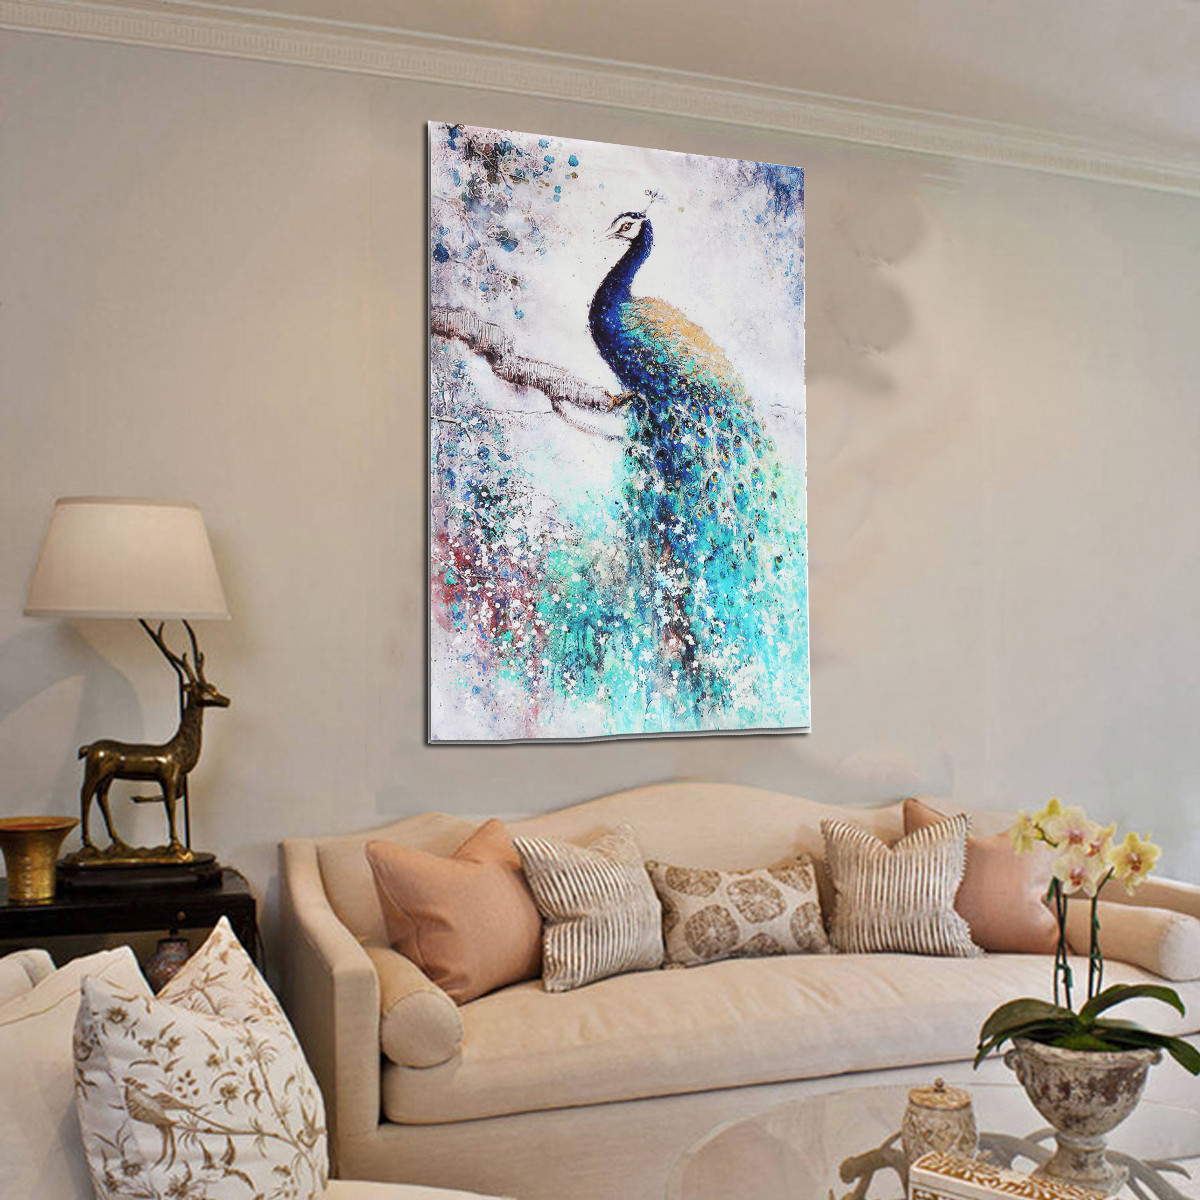 Peacock Living Room Decor Peacock Hd Unframed Canvas Print Peacock Art Painting Picture Wall